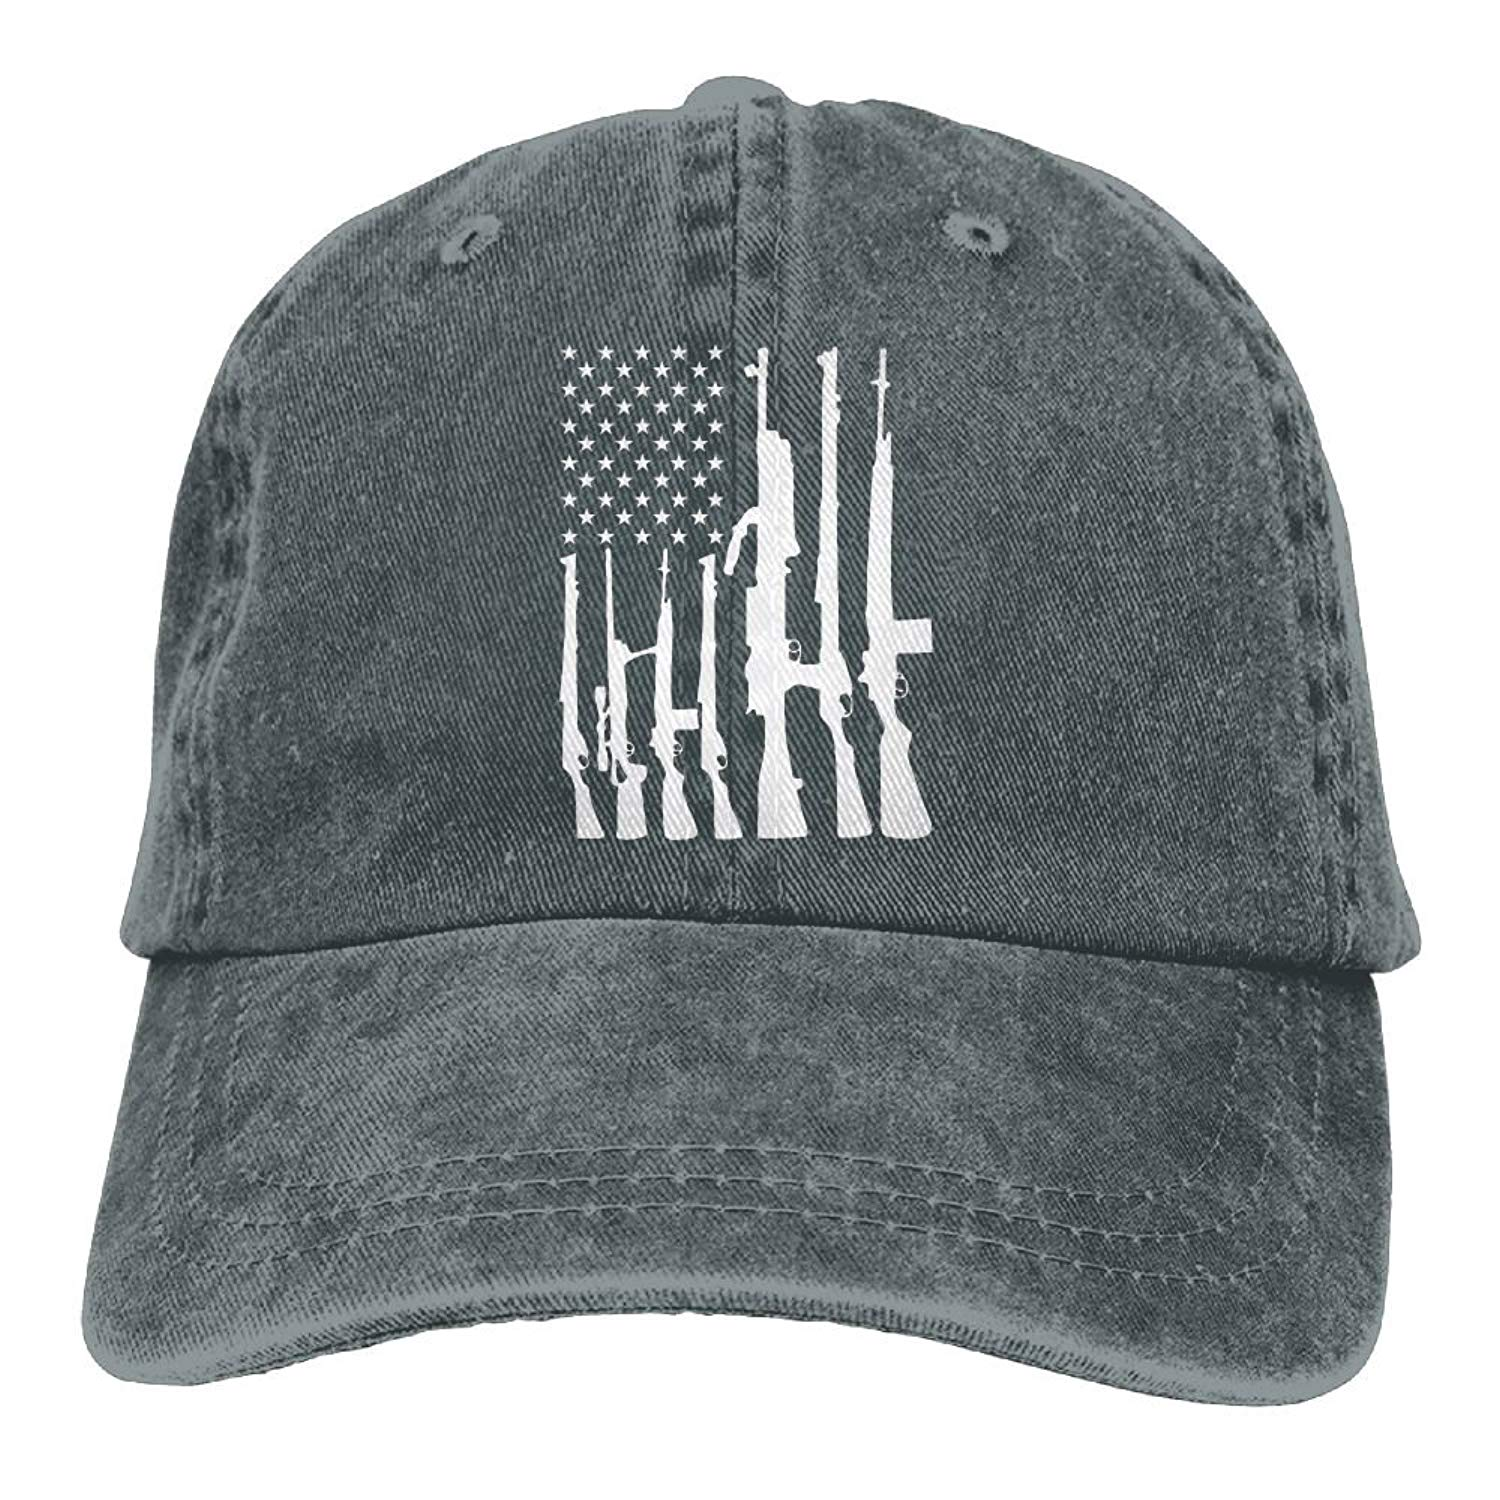 Enpengd Never Disarm Guns USA Flag Fashion Men & Women Adjustable Cowboy Cotton Baseball Hats Asphalt